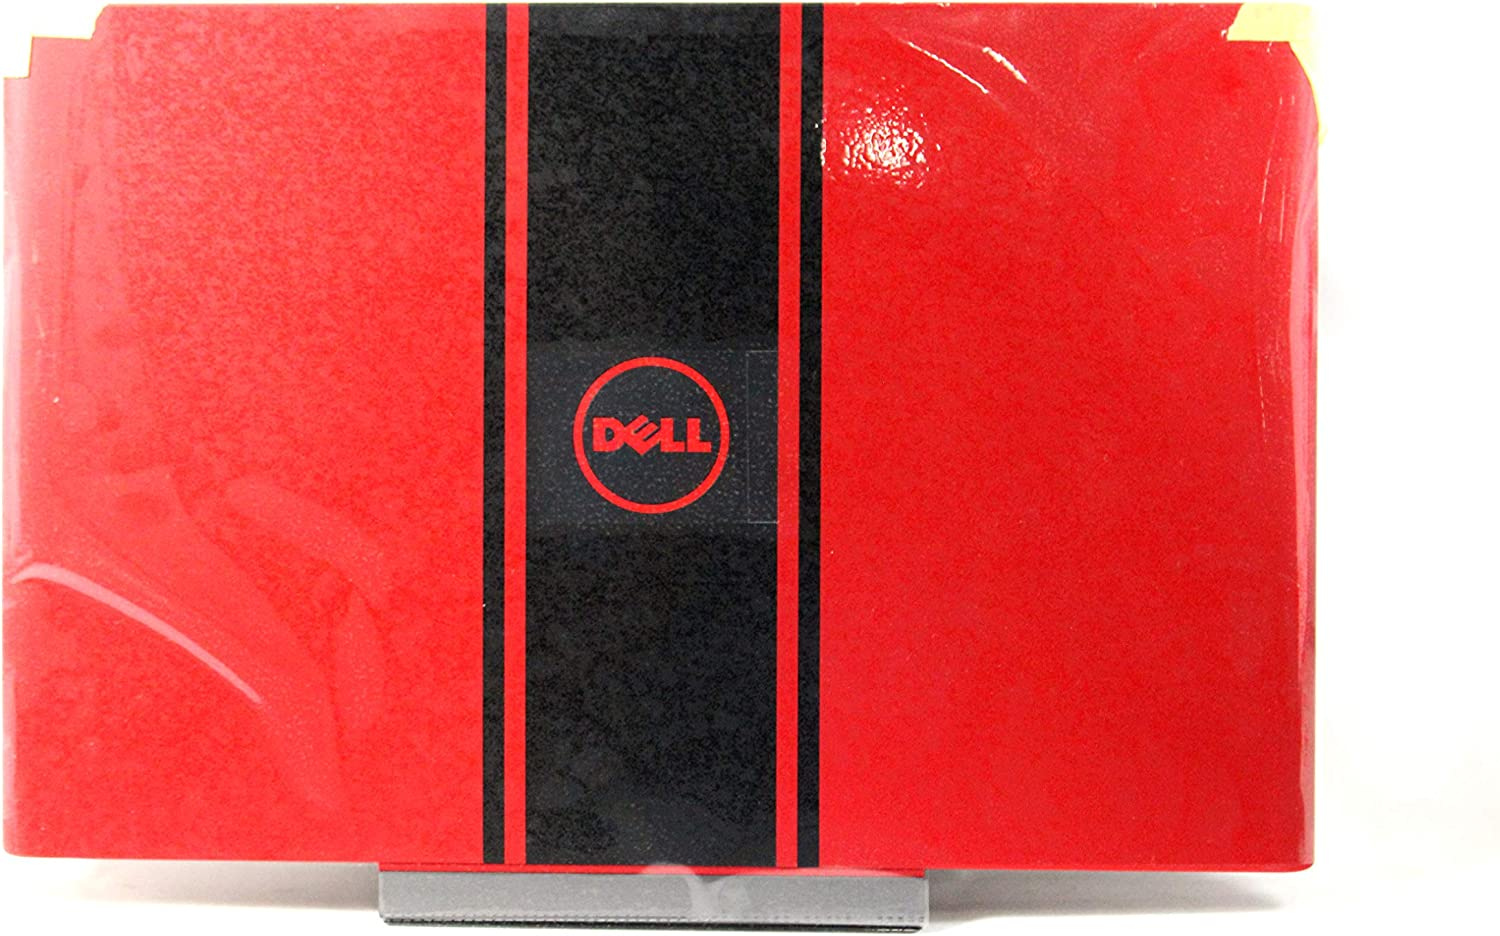 Inspiron 15 Laptops 2-in-1 PCs 7000 7566 7567 Gaming Series LCD Top Back Cover Red & Black 23NX1 CN-023NX1 by EbidDealz